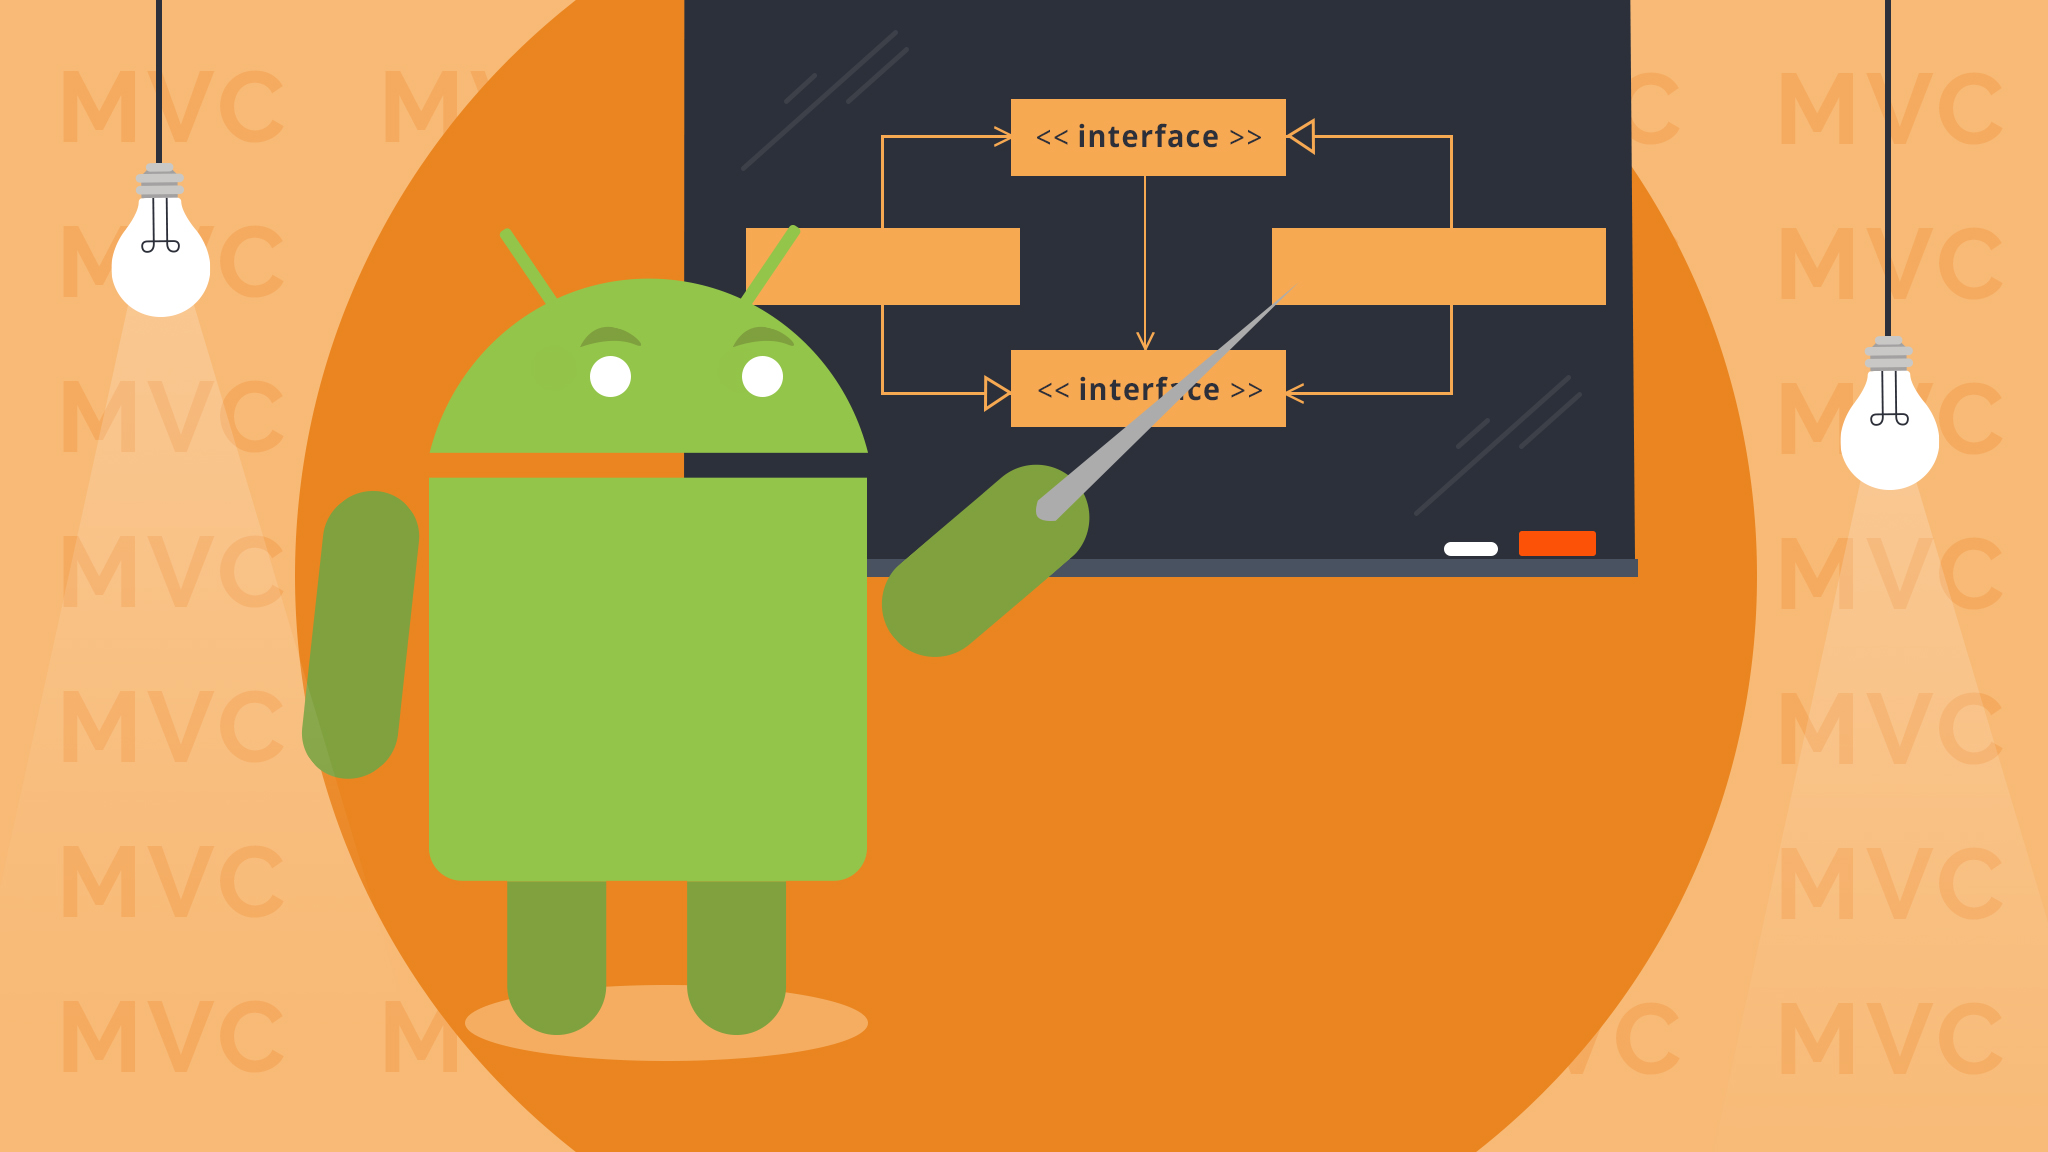 Architecture Diagrams for Android Applications